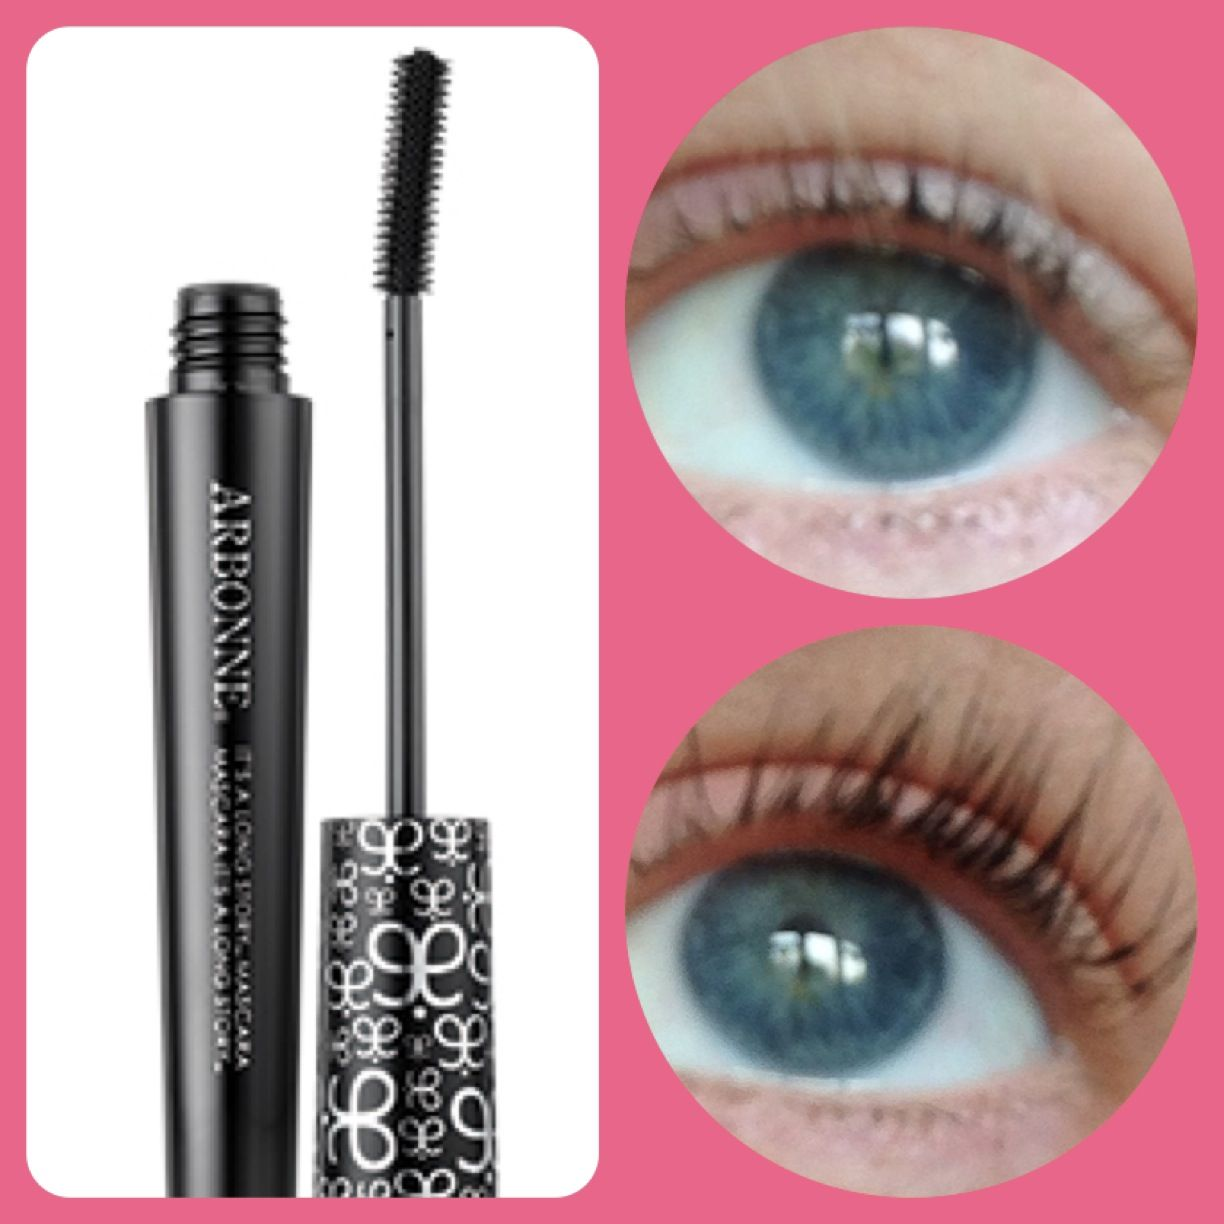 21469b632b8 Love this - #Arbonne It's a Long Story Mascara. Before and after (and yes  that is my eye :D)